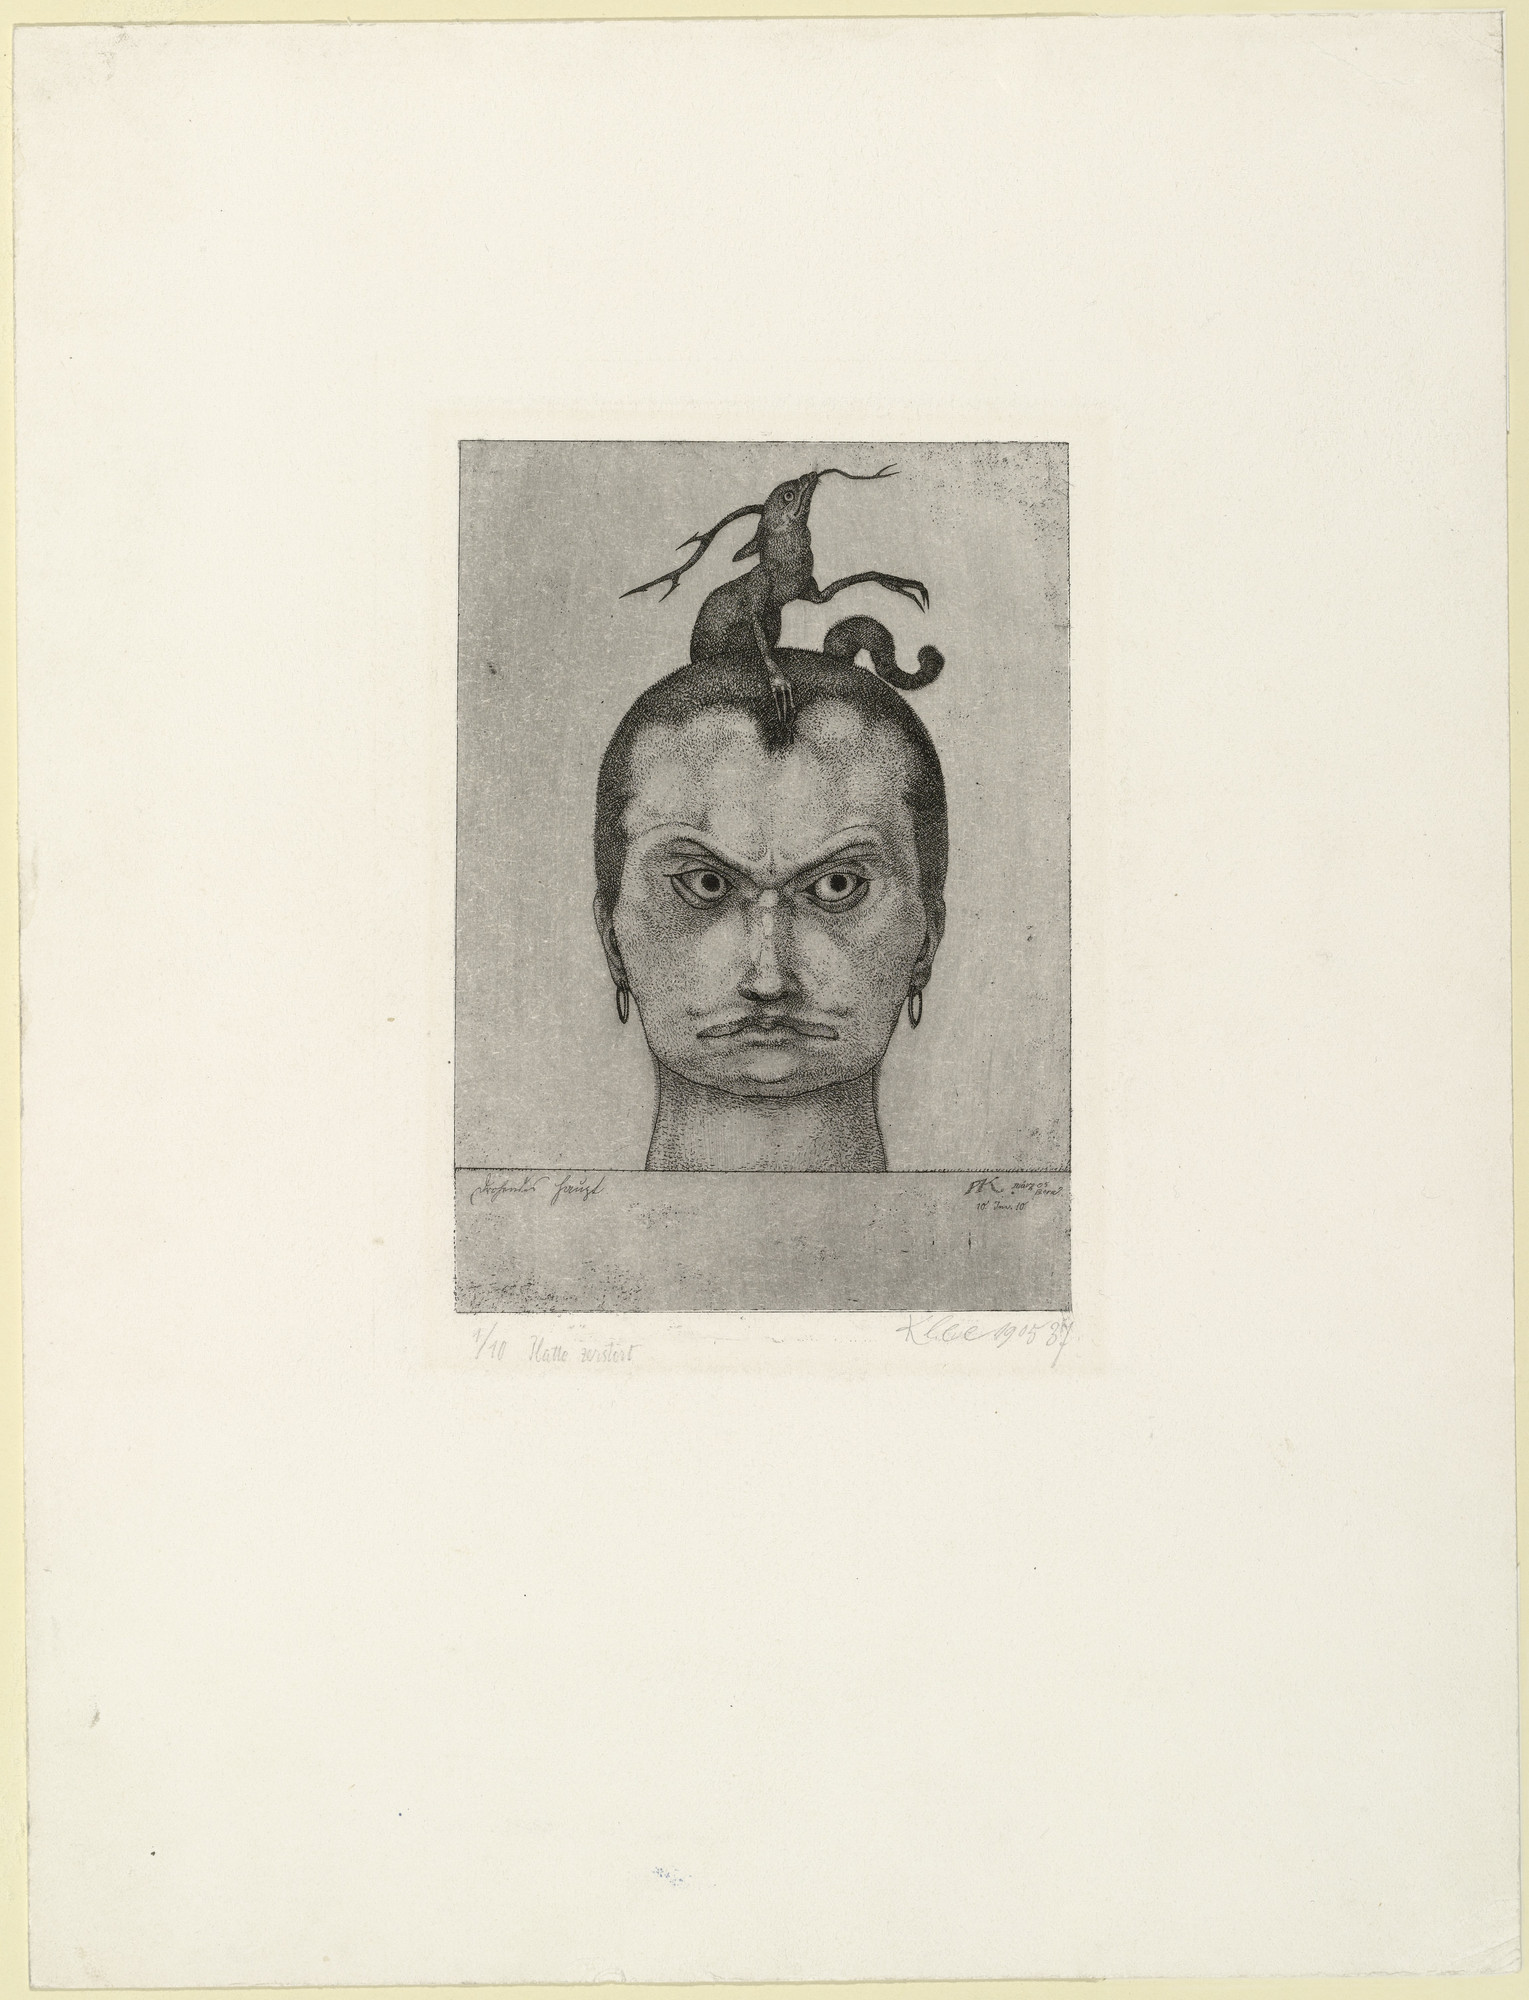 Paul Klee. Menacing Head (Drohendes Haupt) from the series Inventions (Inventionen). 1905